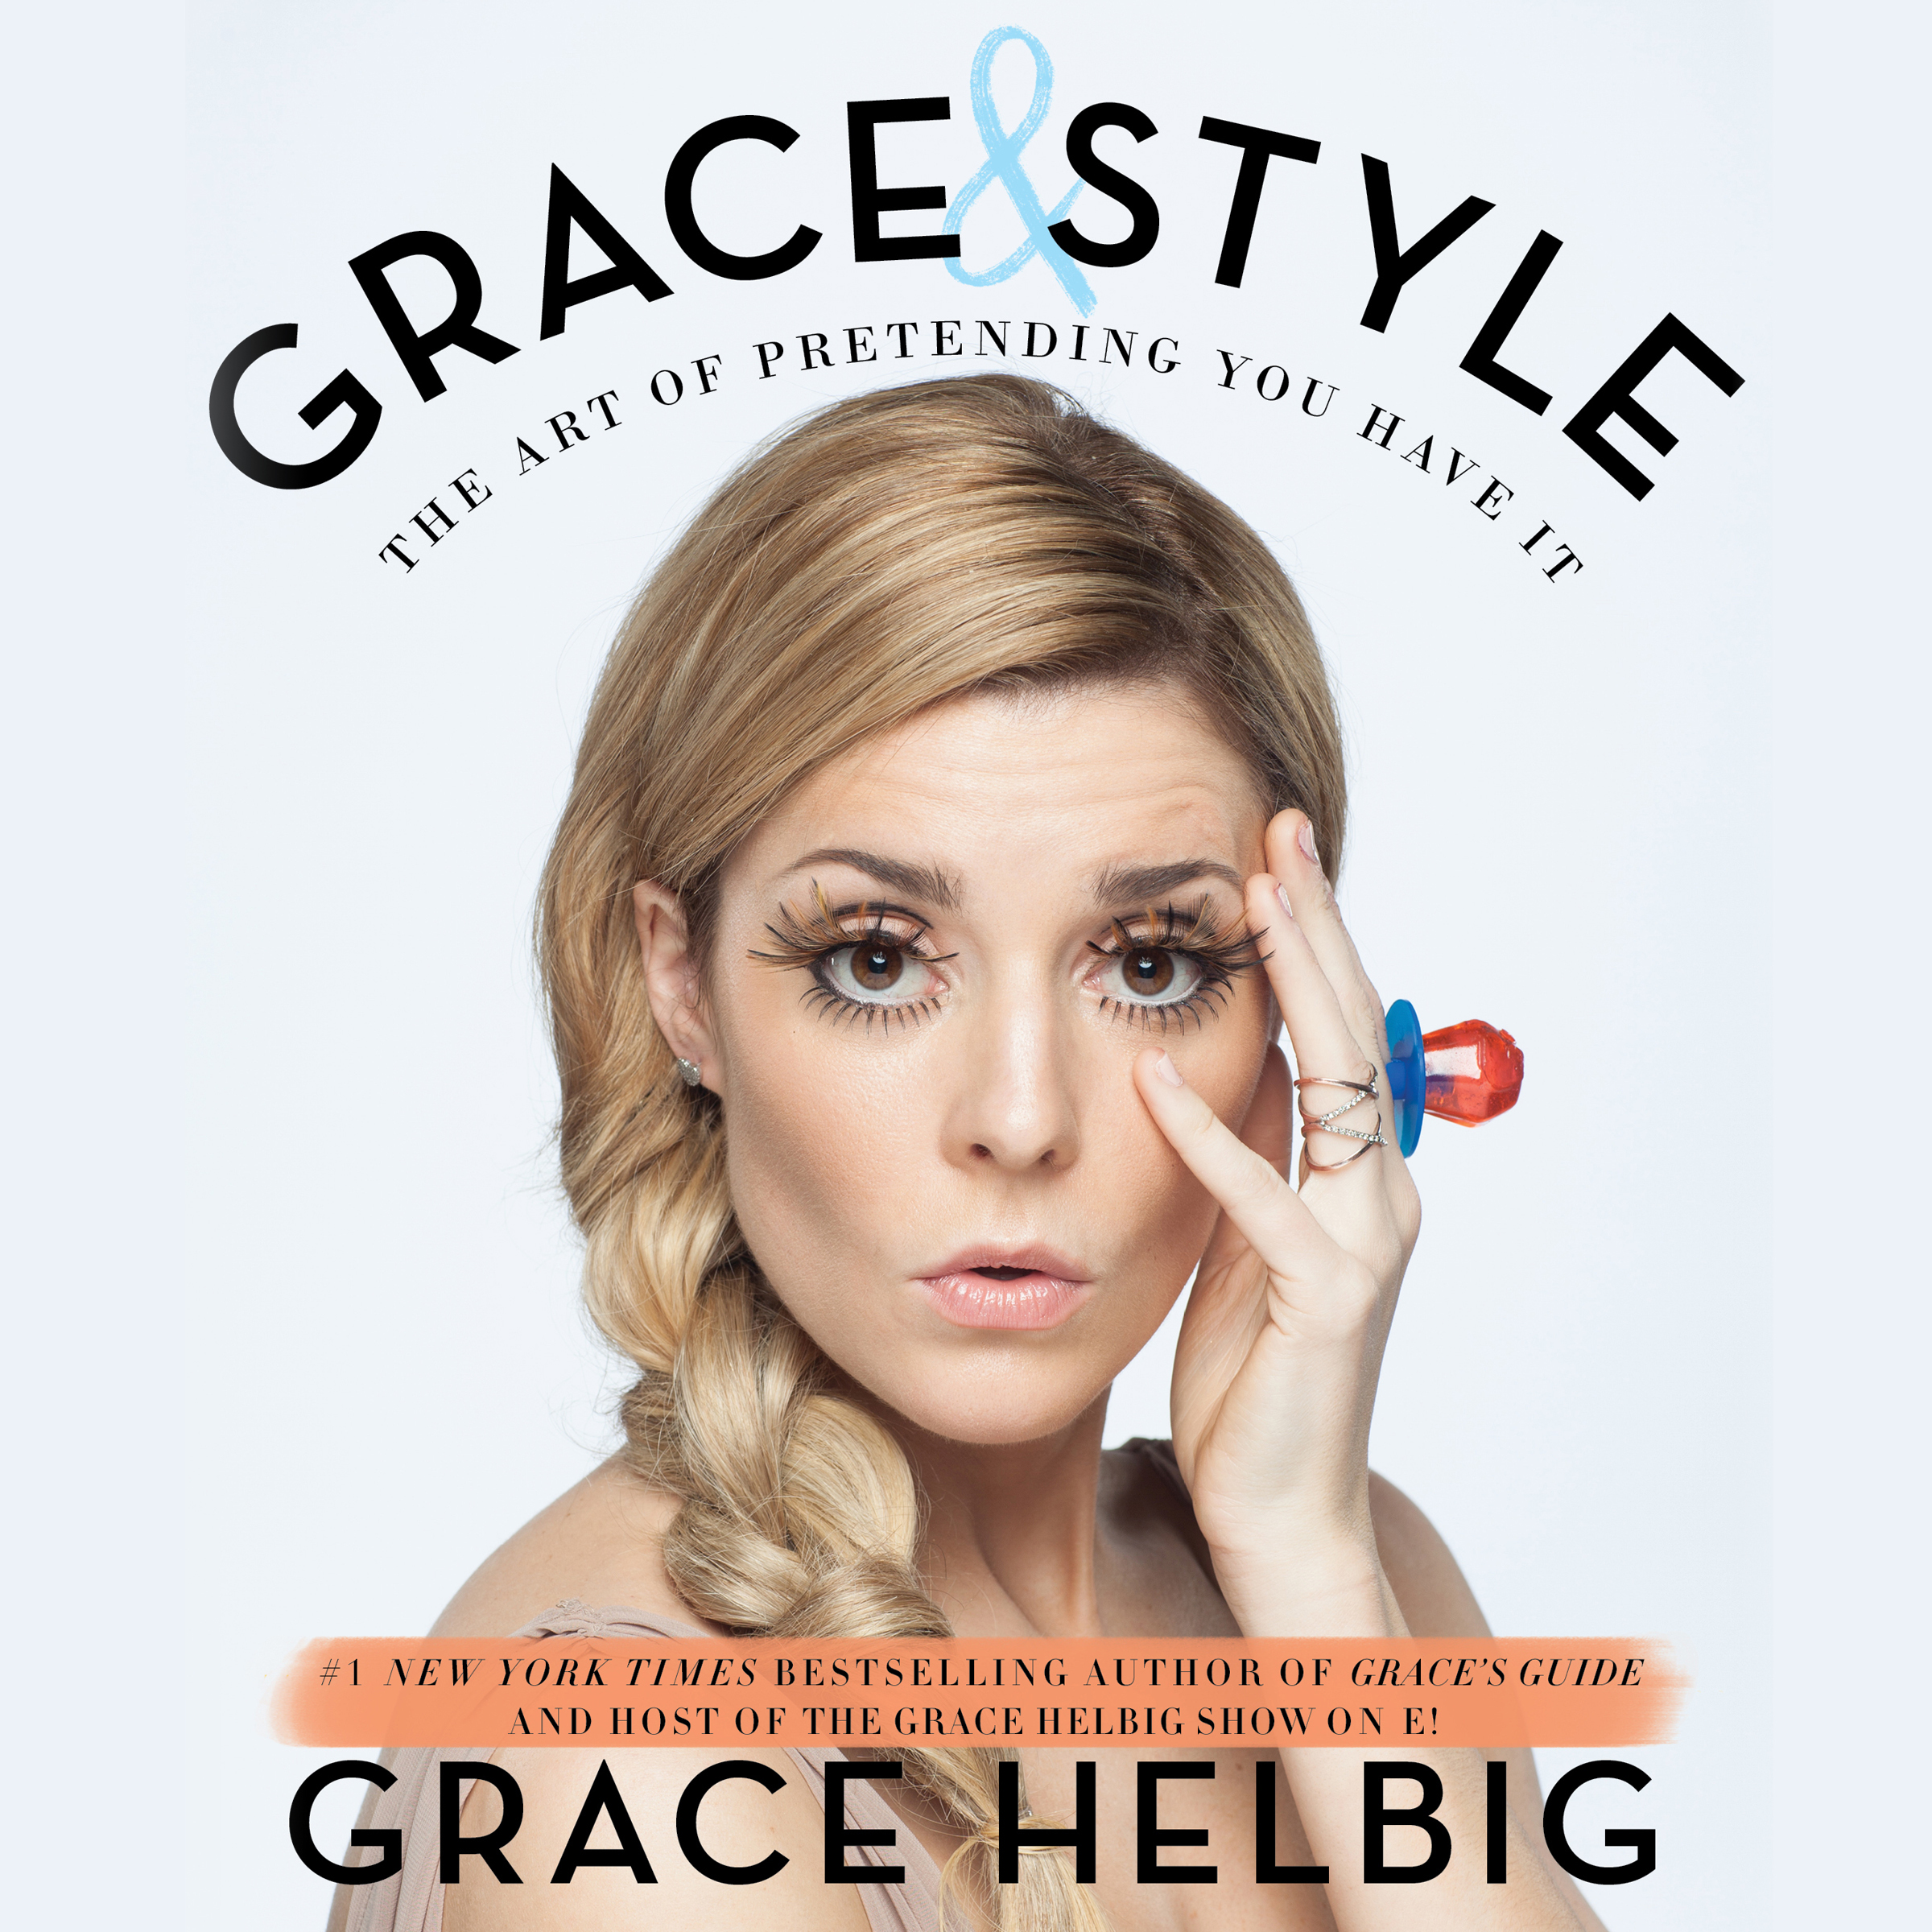 Printable Grace & Style: The Art of Pretending You Have It Audiobook Cover Art